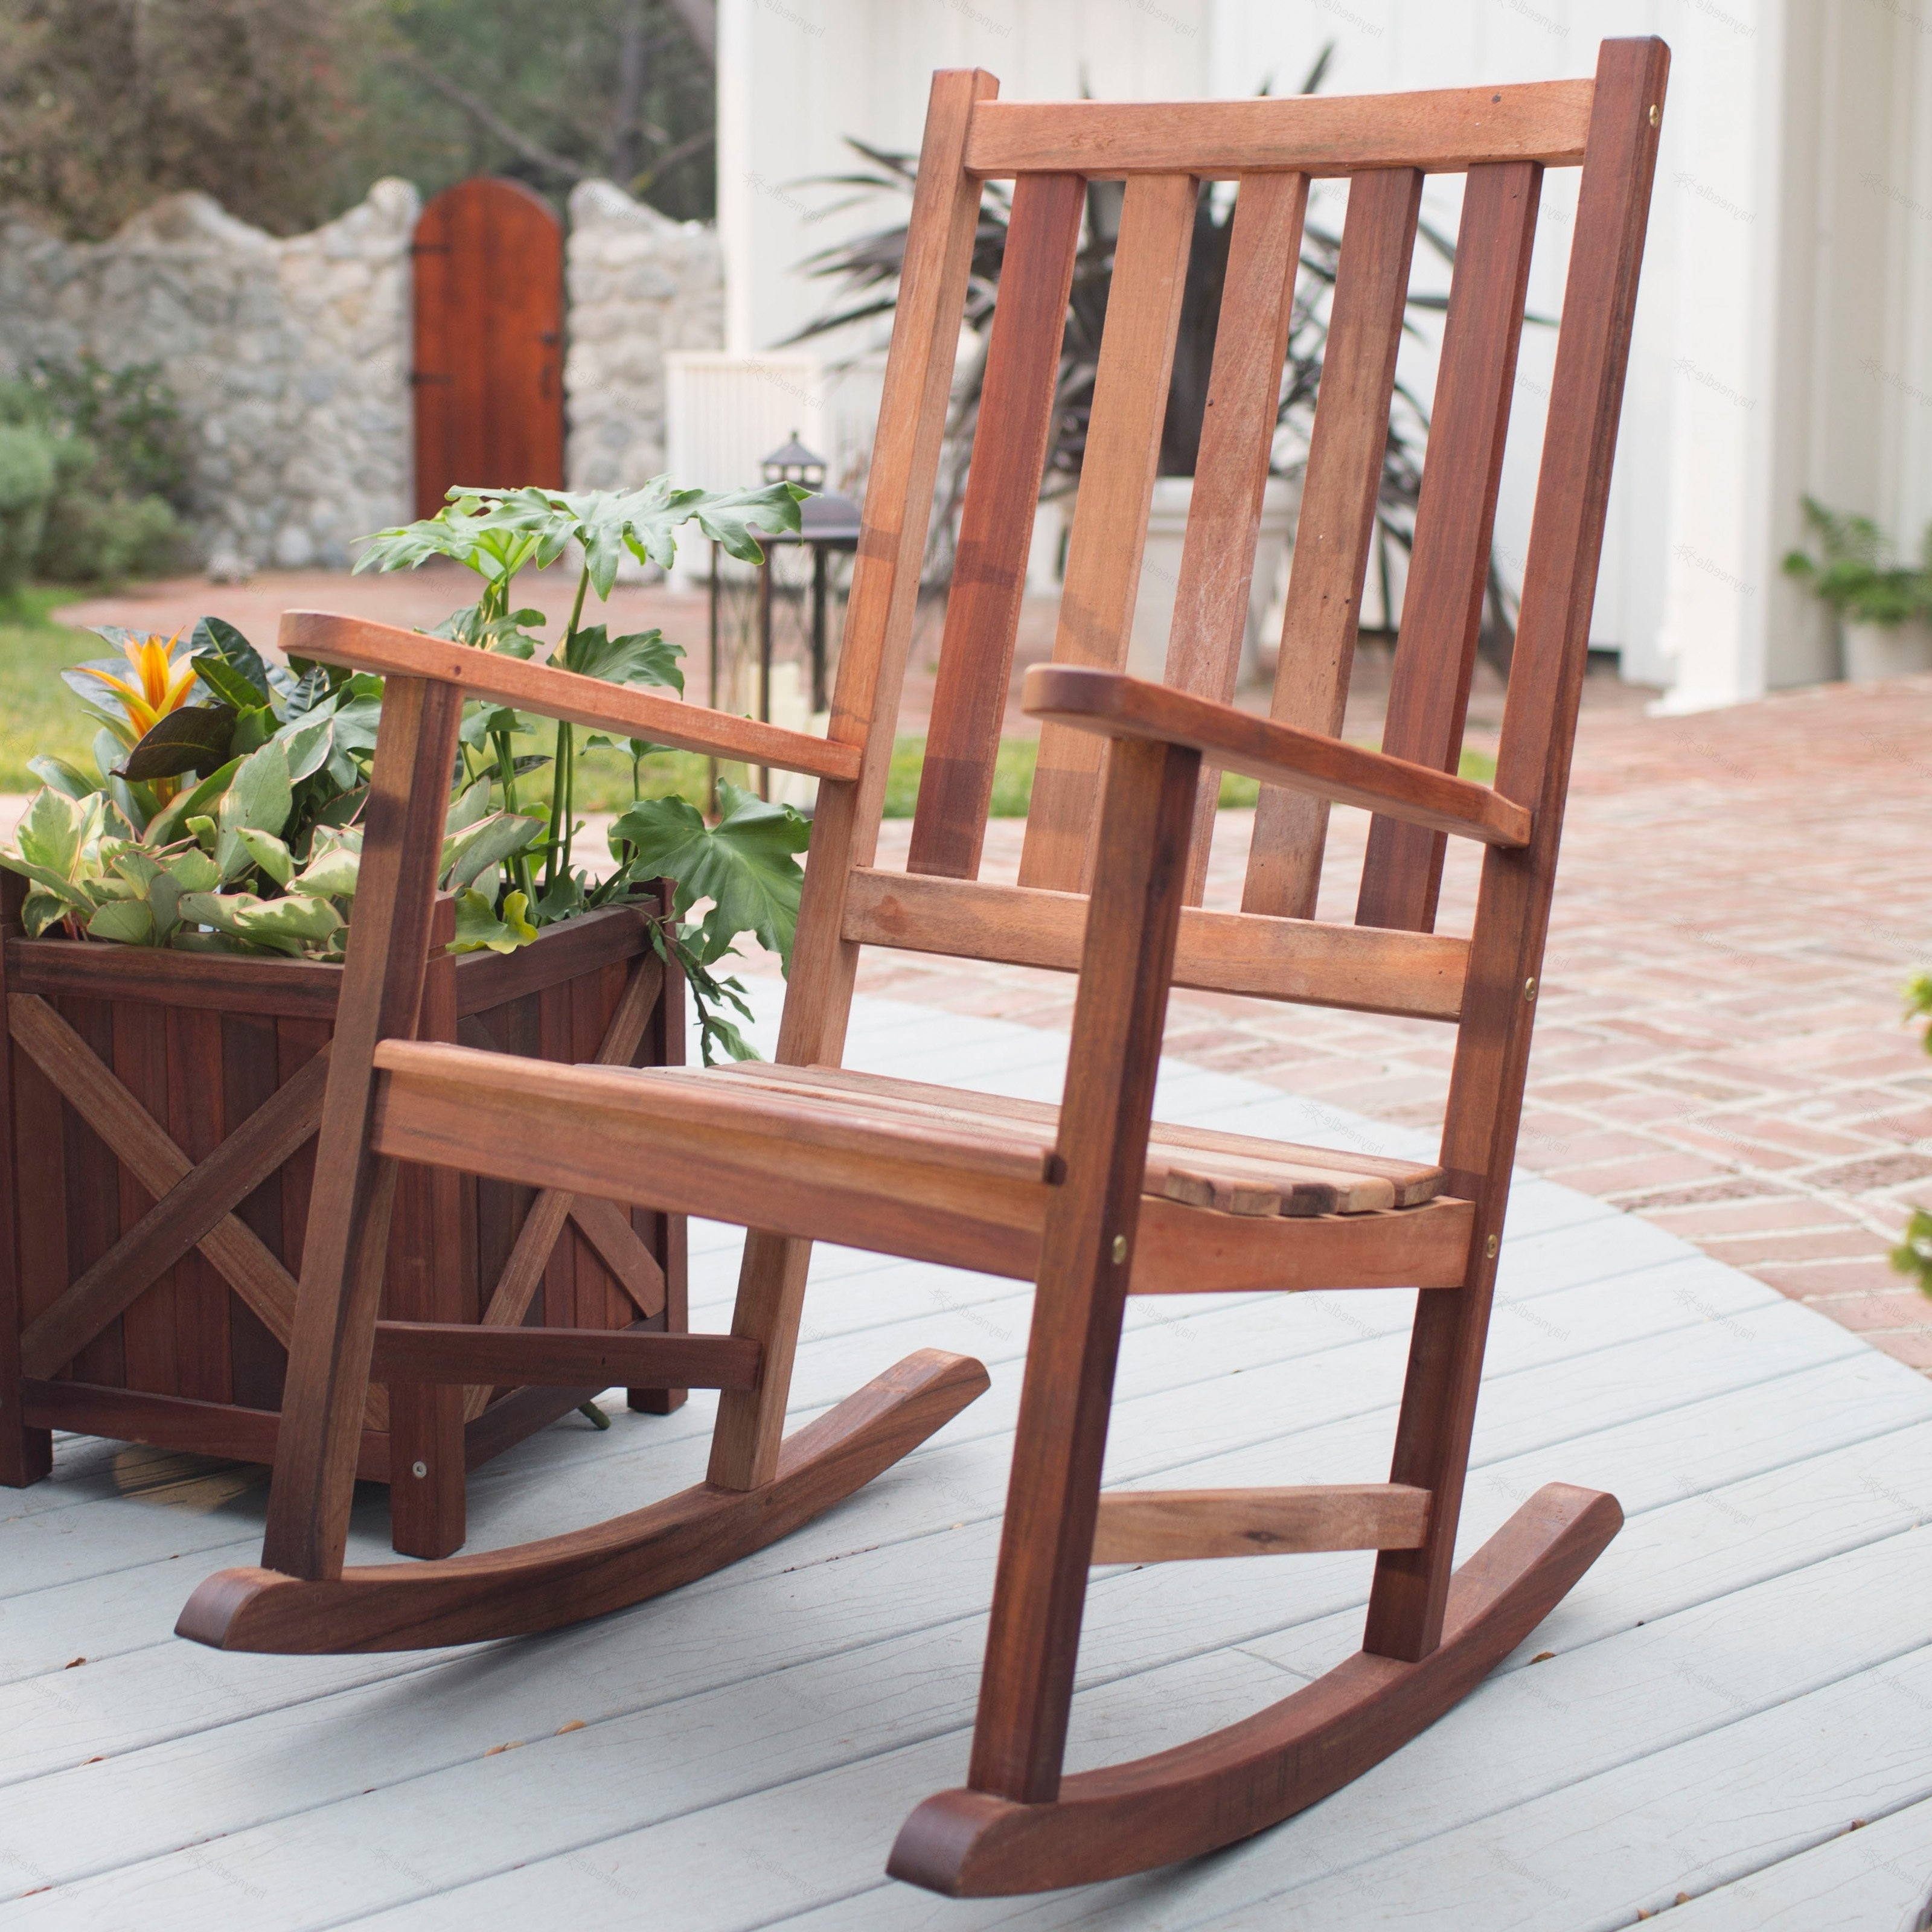 Most Popular Wooden Patio Rocking Chairs Inside Decorating Black Outdoor Rocking Chairs Black Patio Rocking Chair (View 3 of 20)